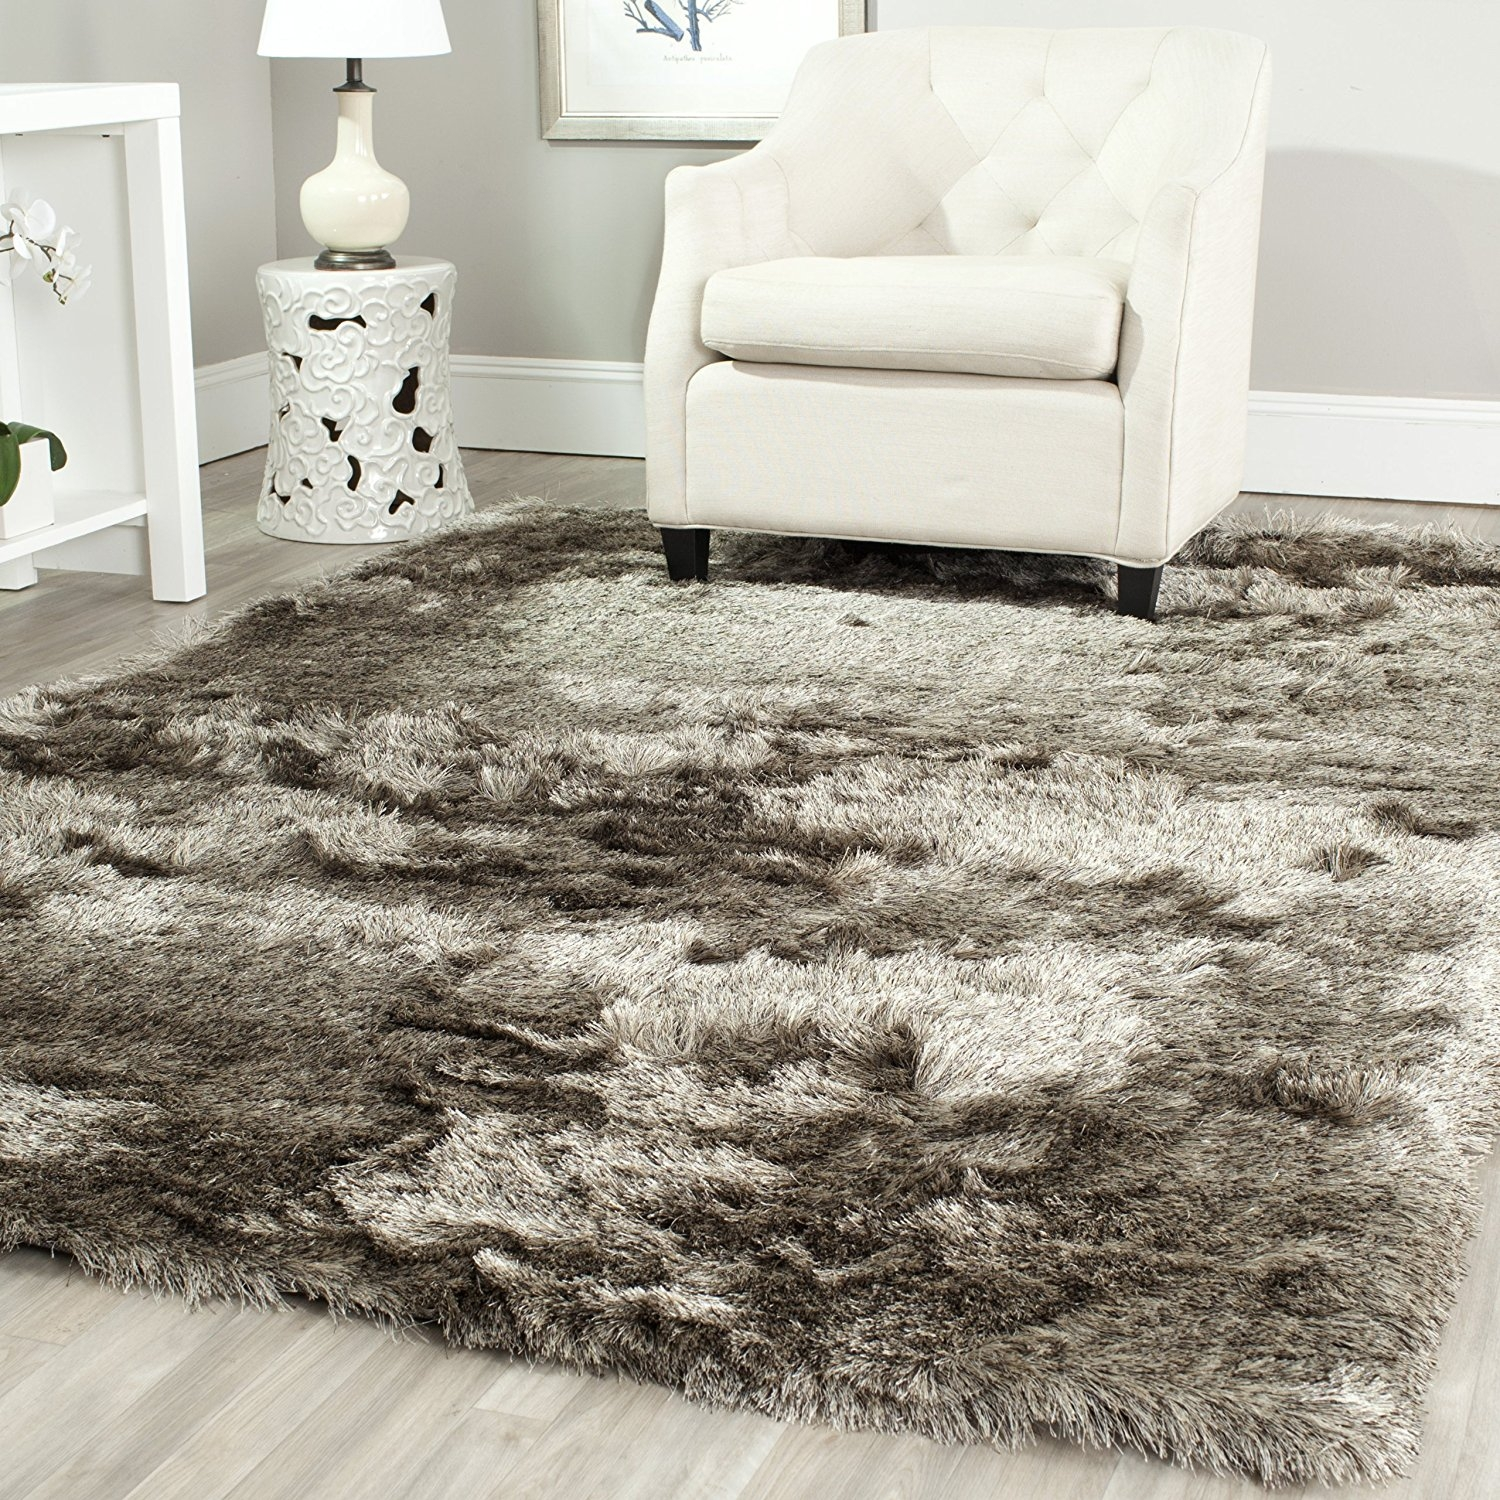 Safavieh Paris Shag Collection SG511-8383 Titanium Polyester Area Rug (4' x 6')